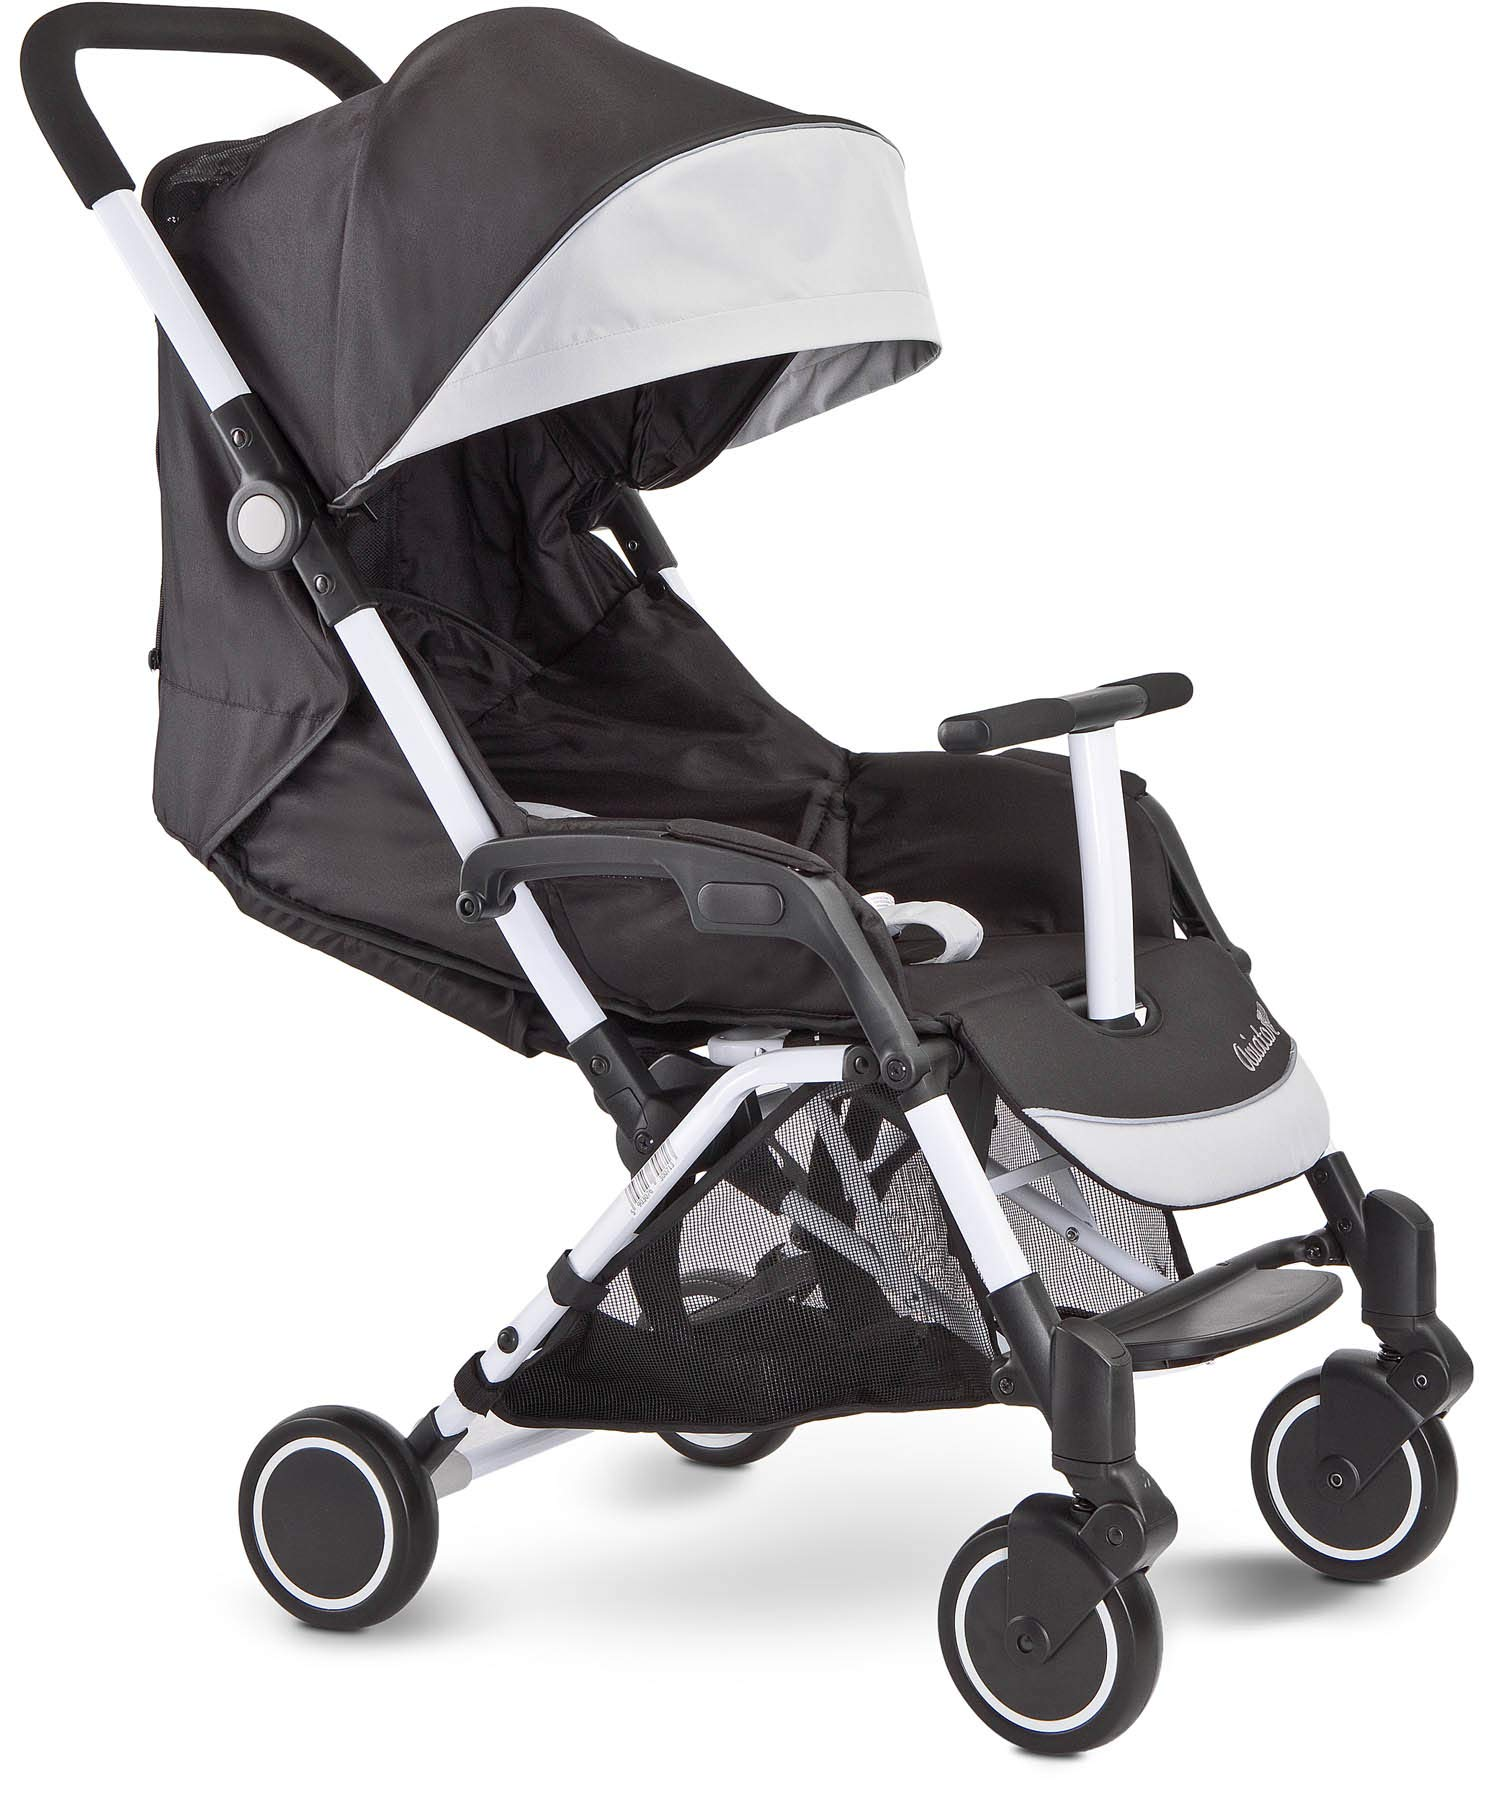 Aviator Ultralight Pushchair Grey Caretero Stroller for babies from 6 months Month weighing up to 15 kg Compact size and light weight (7.1kg) for easy manoeuvring and transport Eva foam wheels front with cushioning for driving comfort 3